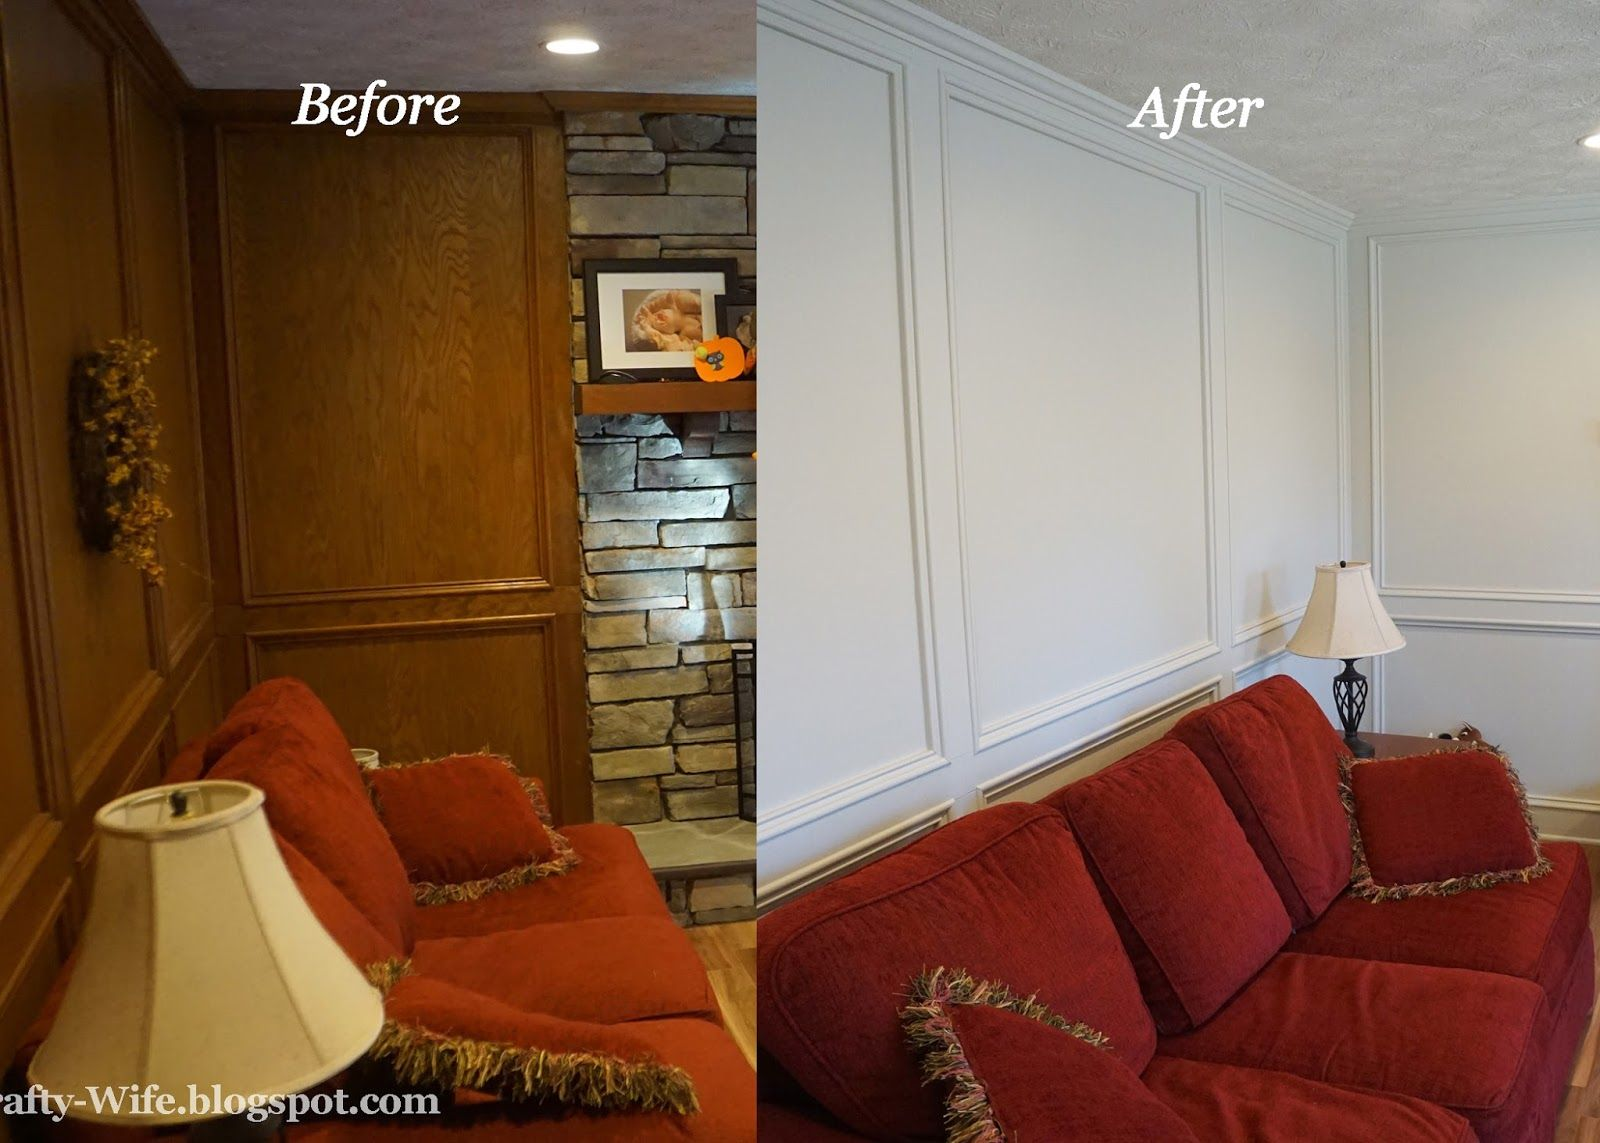 Judges painted paneling before and after a crafty wife How to cover old wood paneling